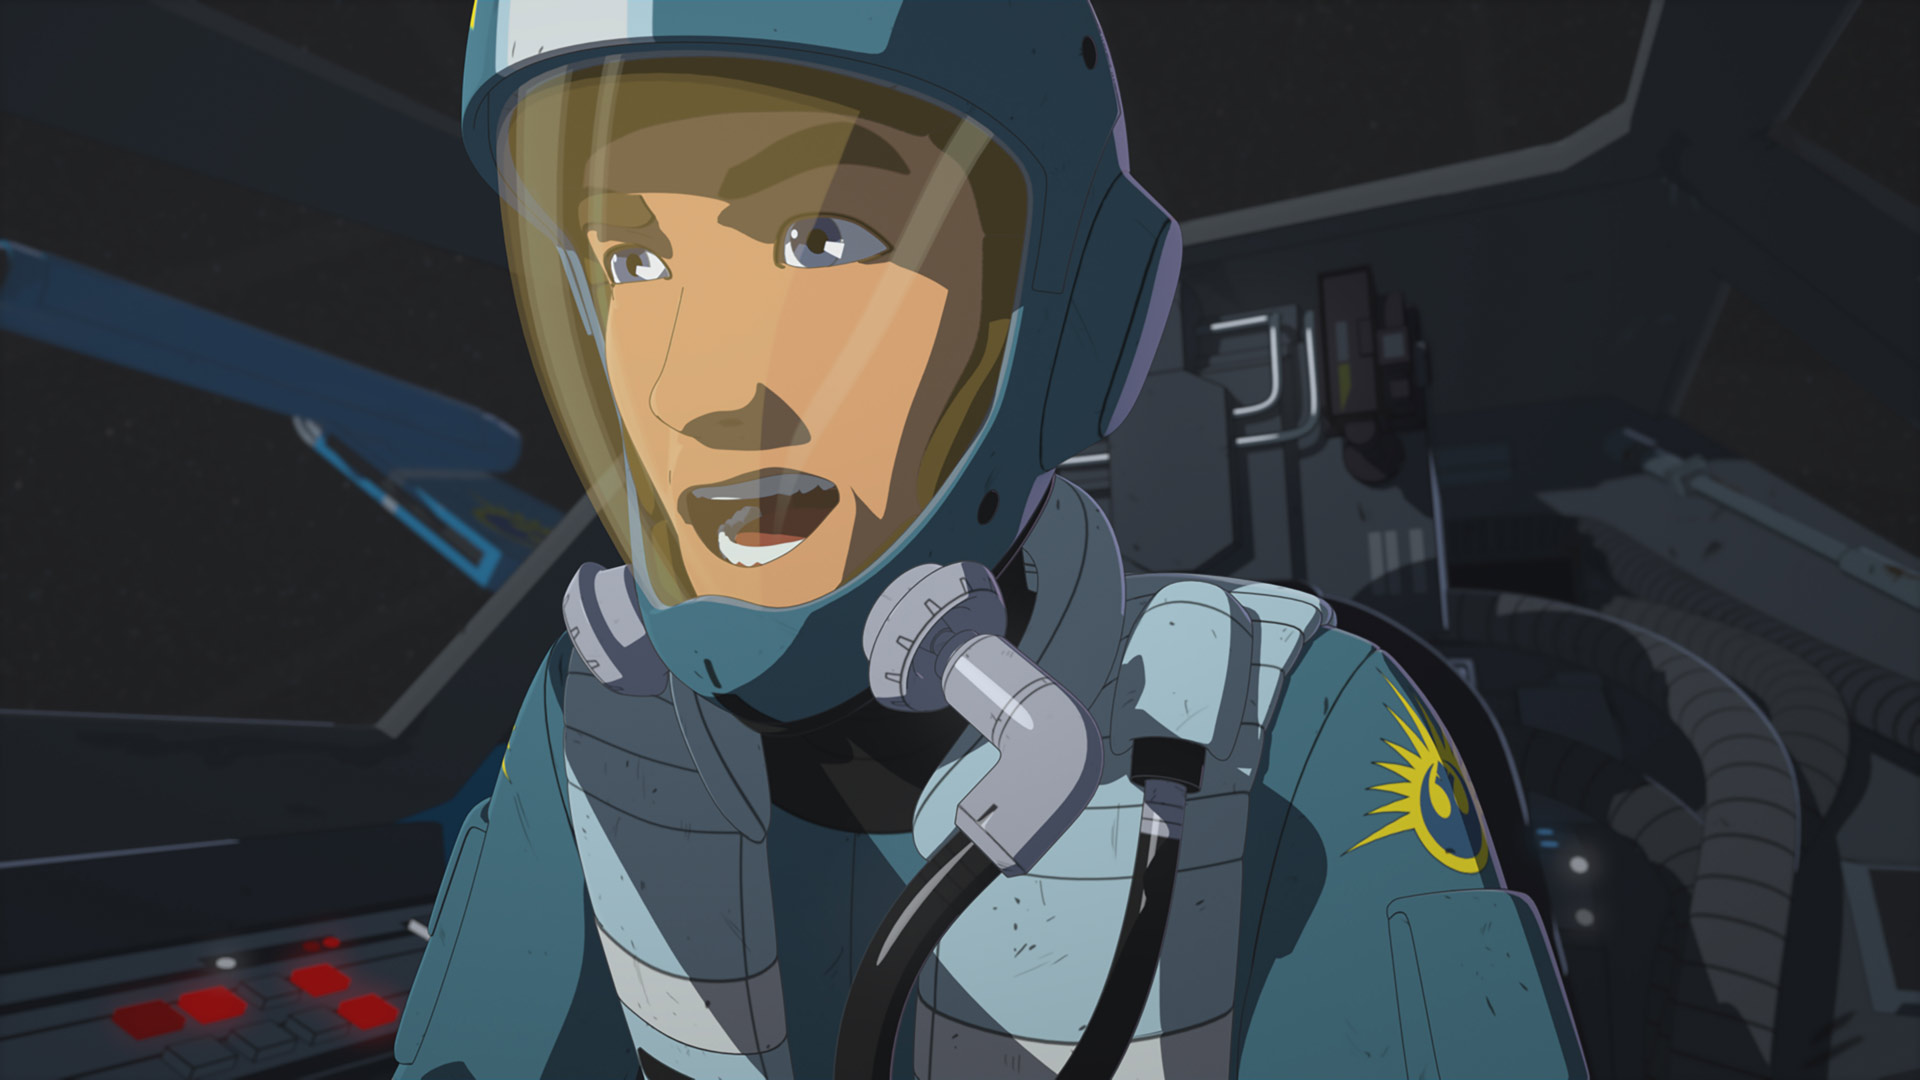 Kaz in Star Wars Resistance.